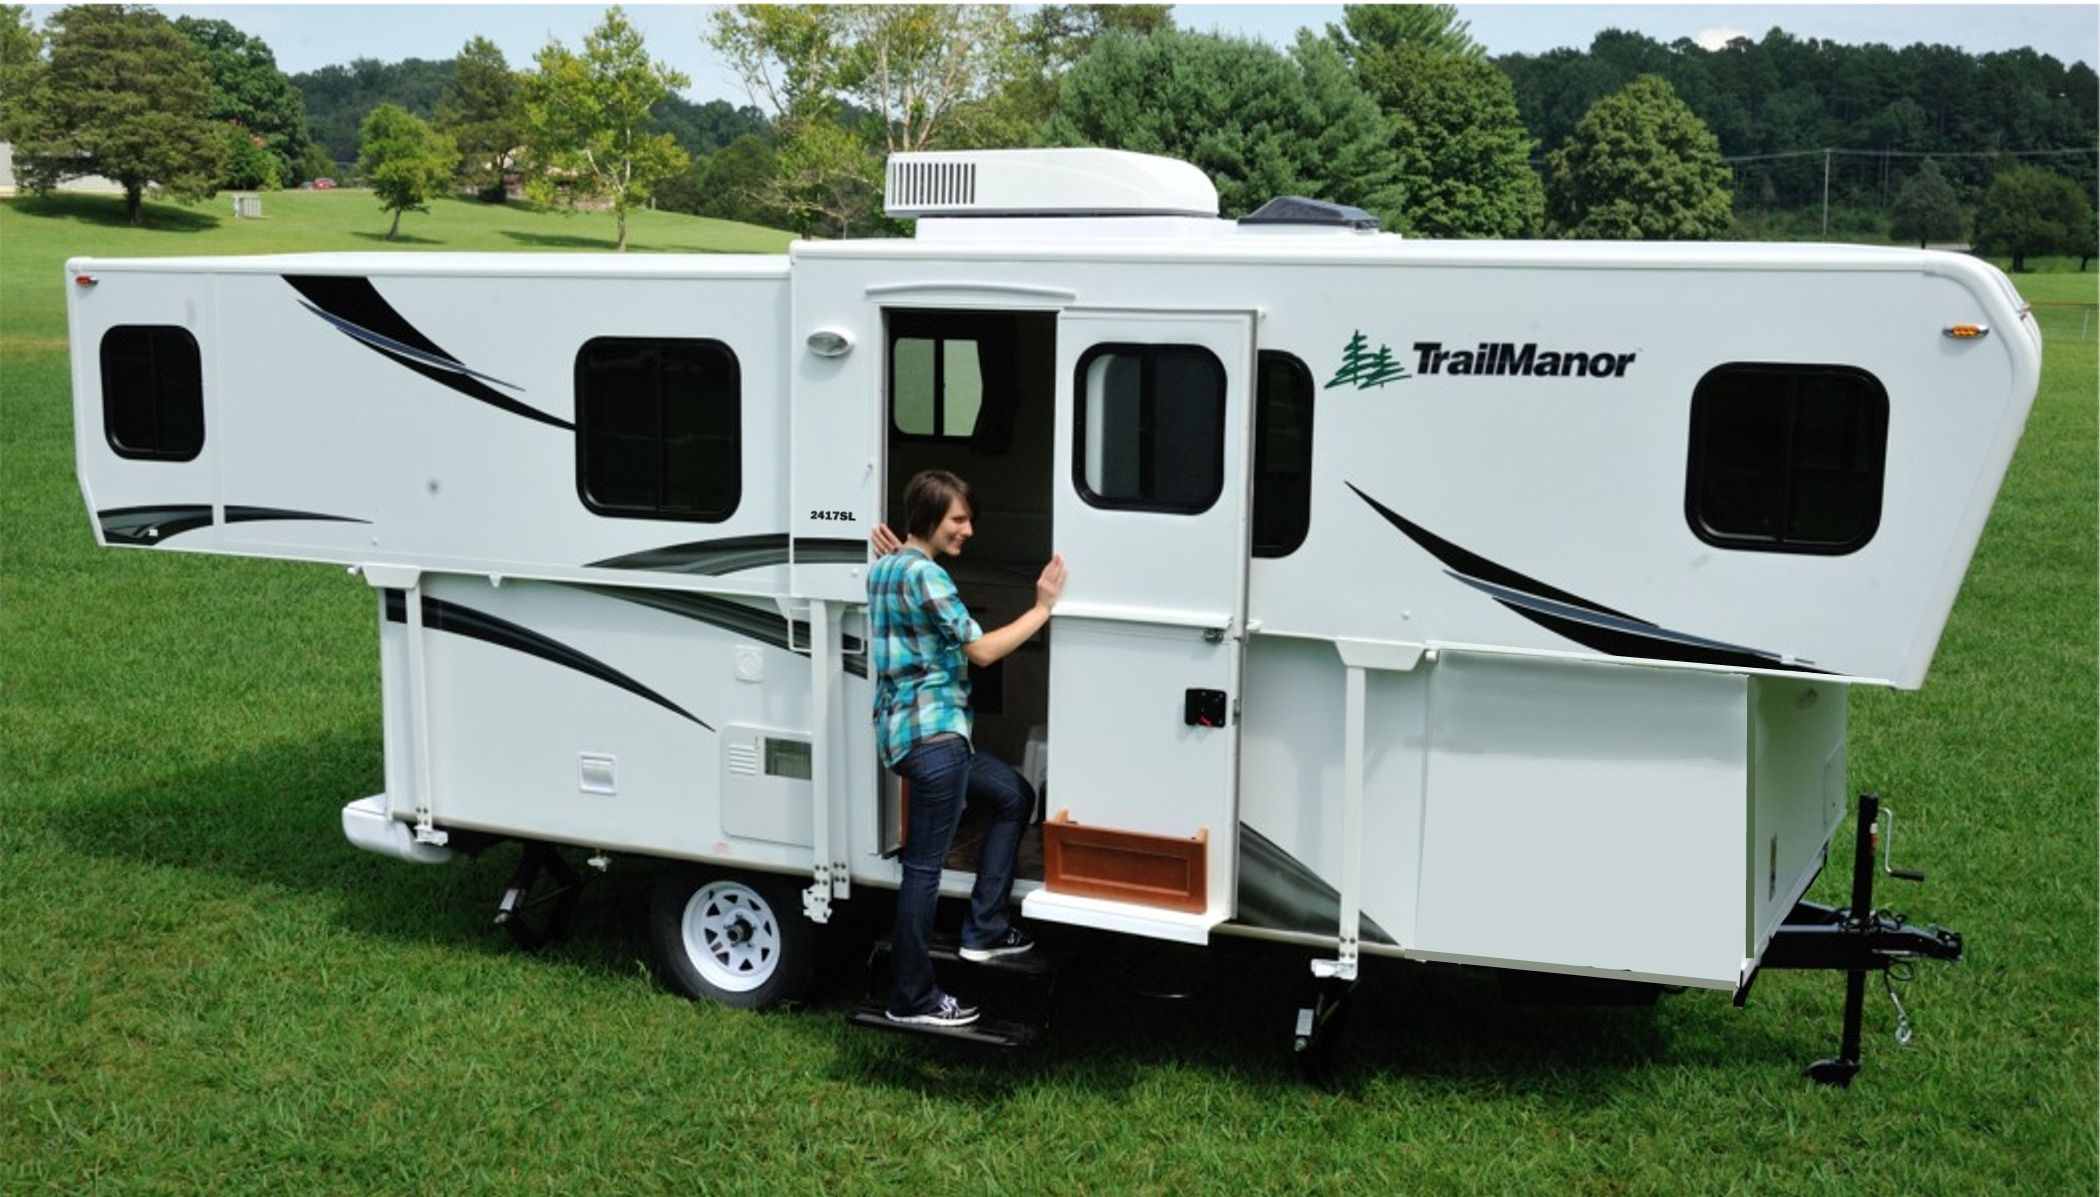 TRAILMANOR 2417KS with slide out living room. Campers